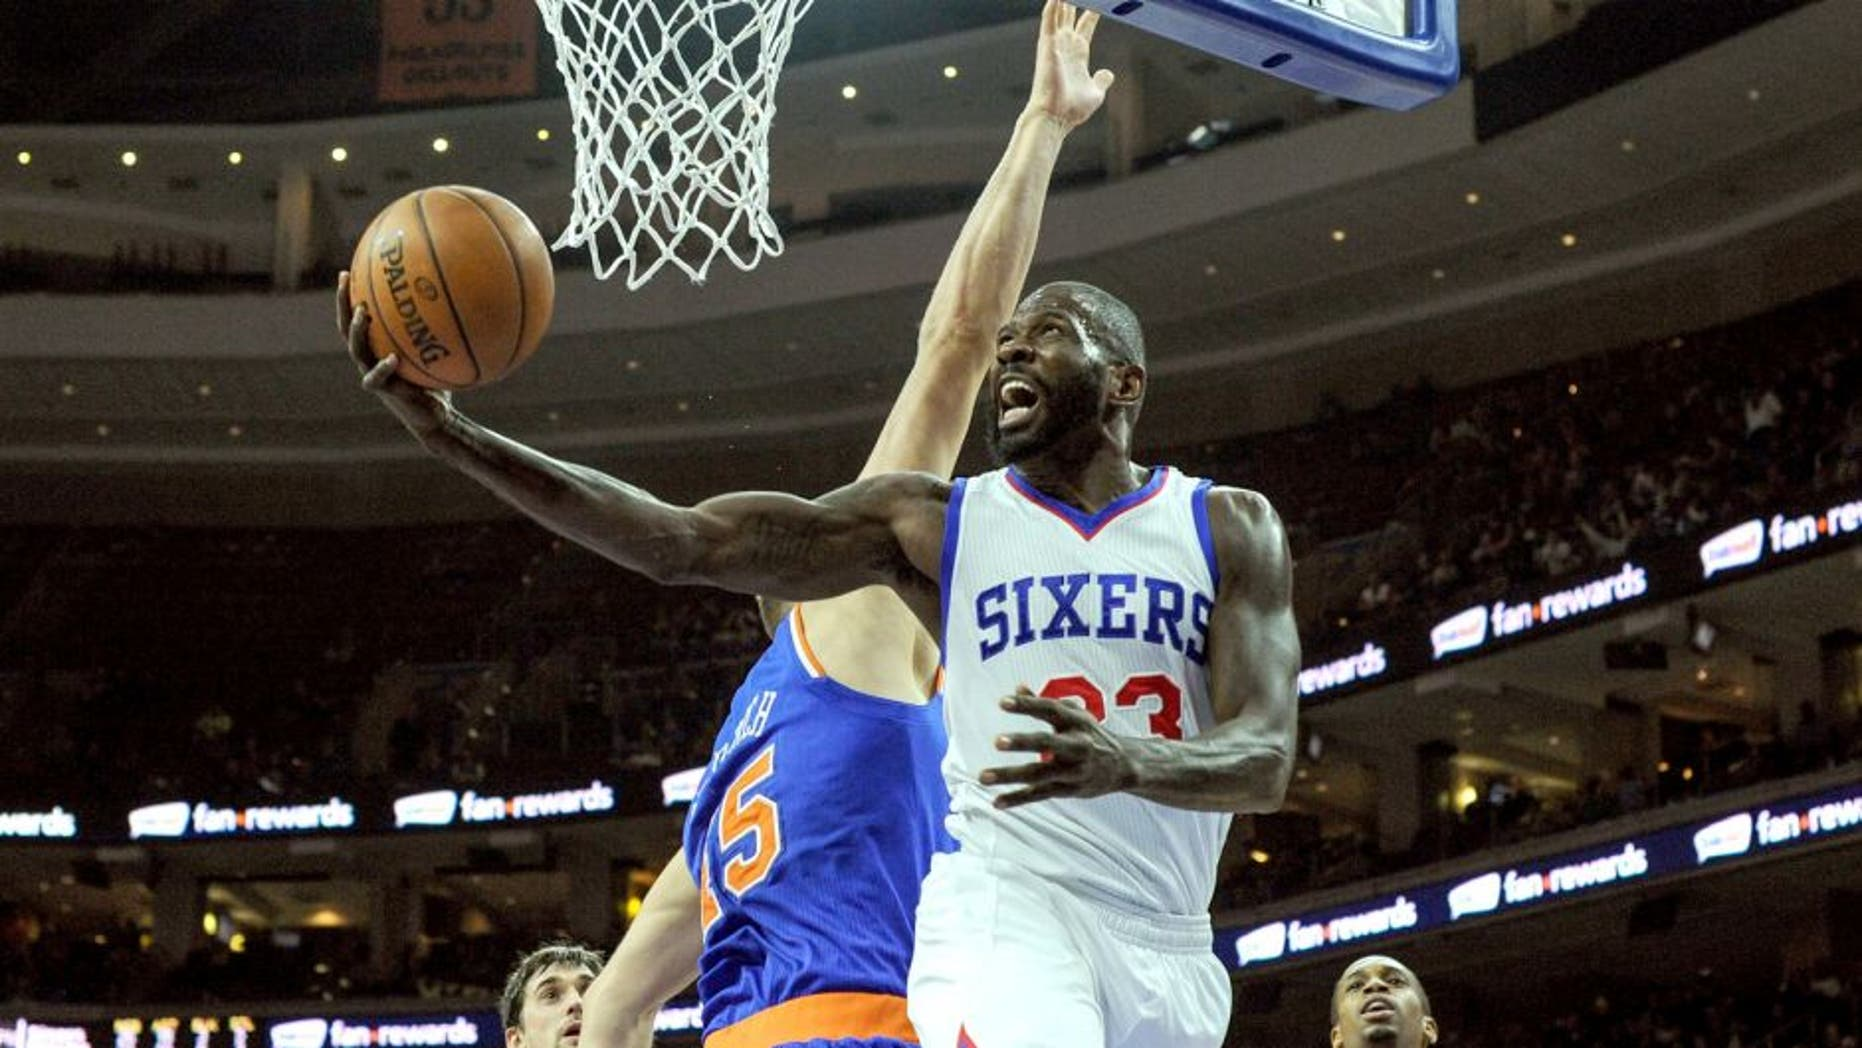 Mar 20, 2015; Philadelphia, PA, USA; Philadelphia 76ers guard Jason Richardson (23) goes up for a shot during the third quarter of the game against the New York Knicks at the Wells Fargo Center. The Sixers won the game 97-81. Mandatory Credit: John Geliebter-USA TODAY Sports